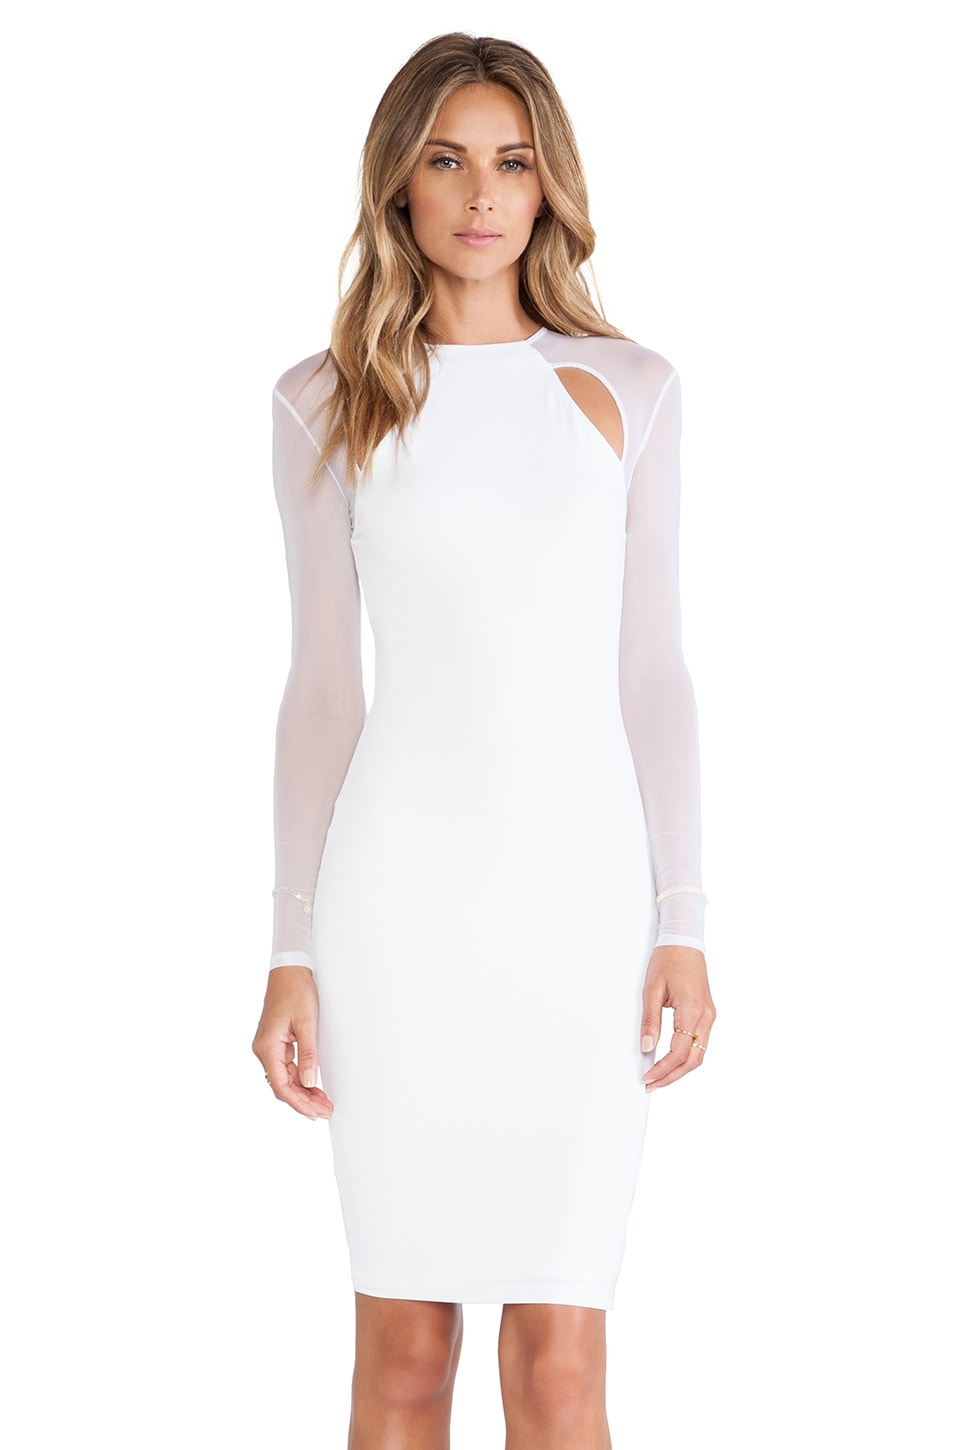 Nookie Stiletto Mesh Long Sleeved Dress in White